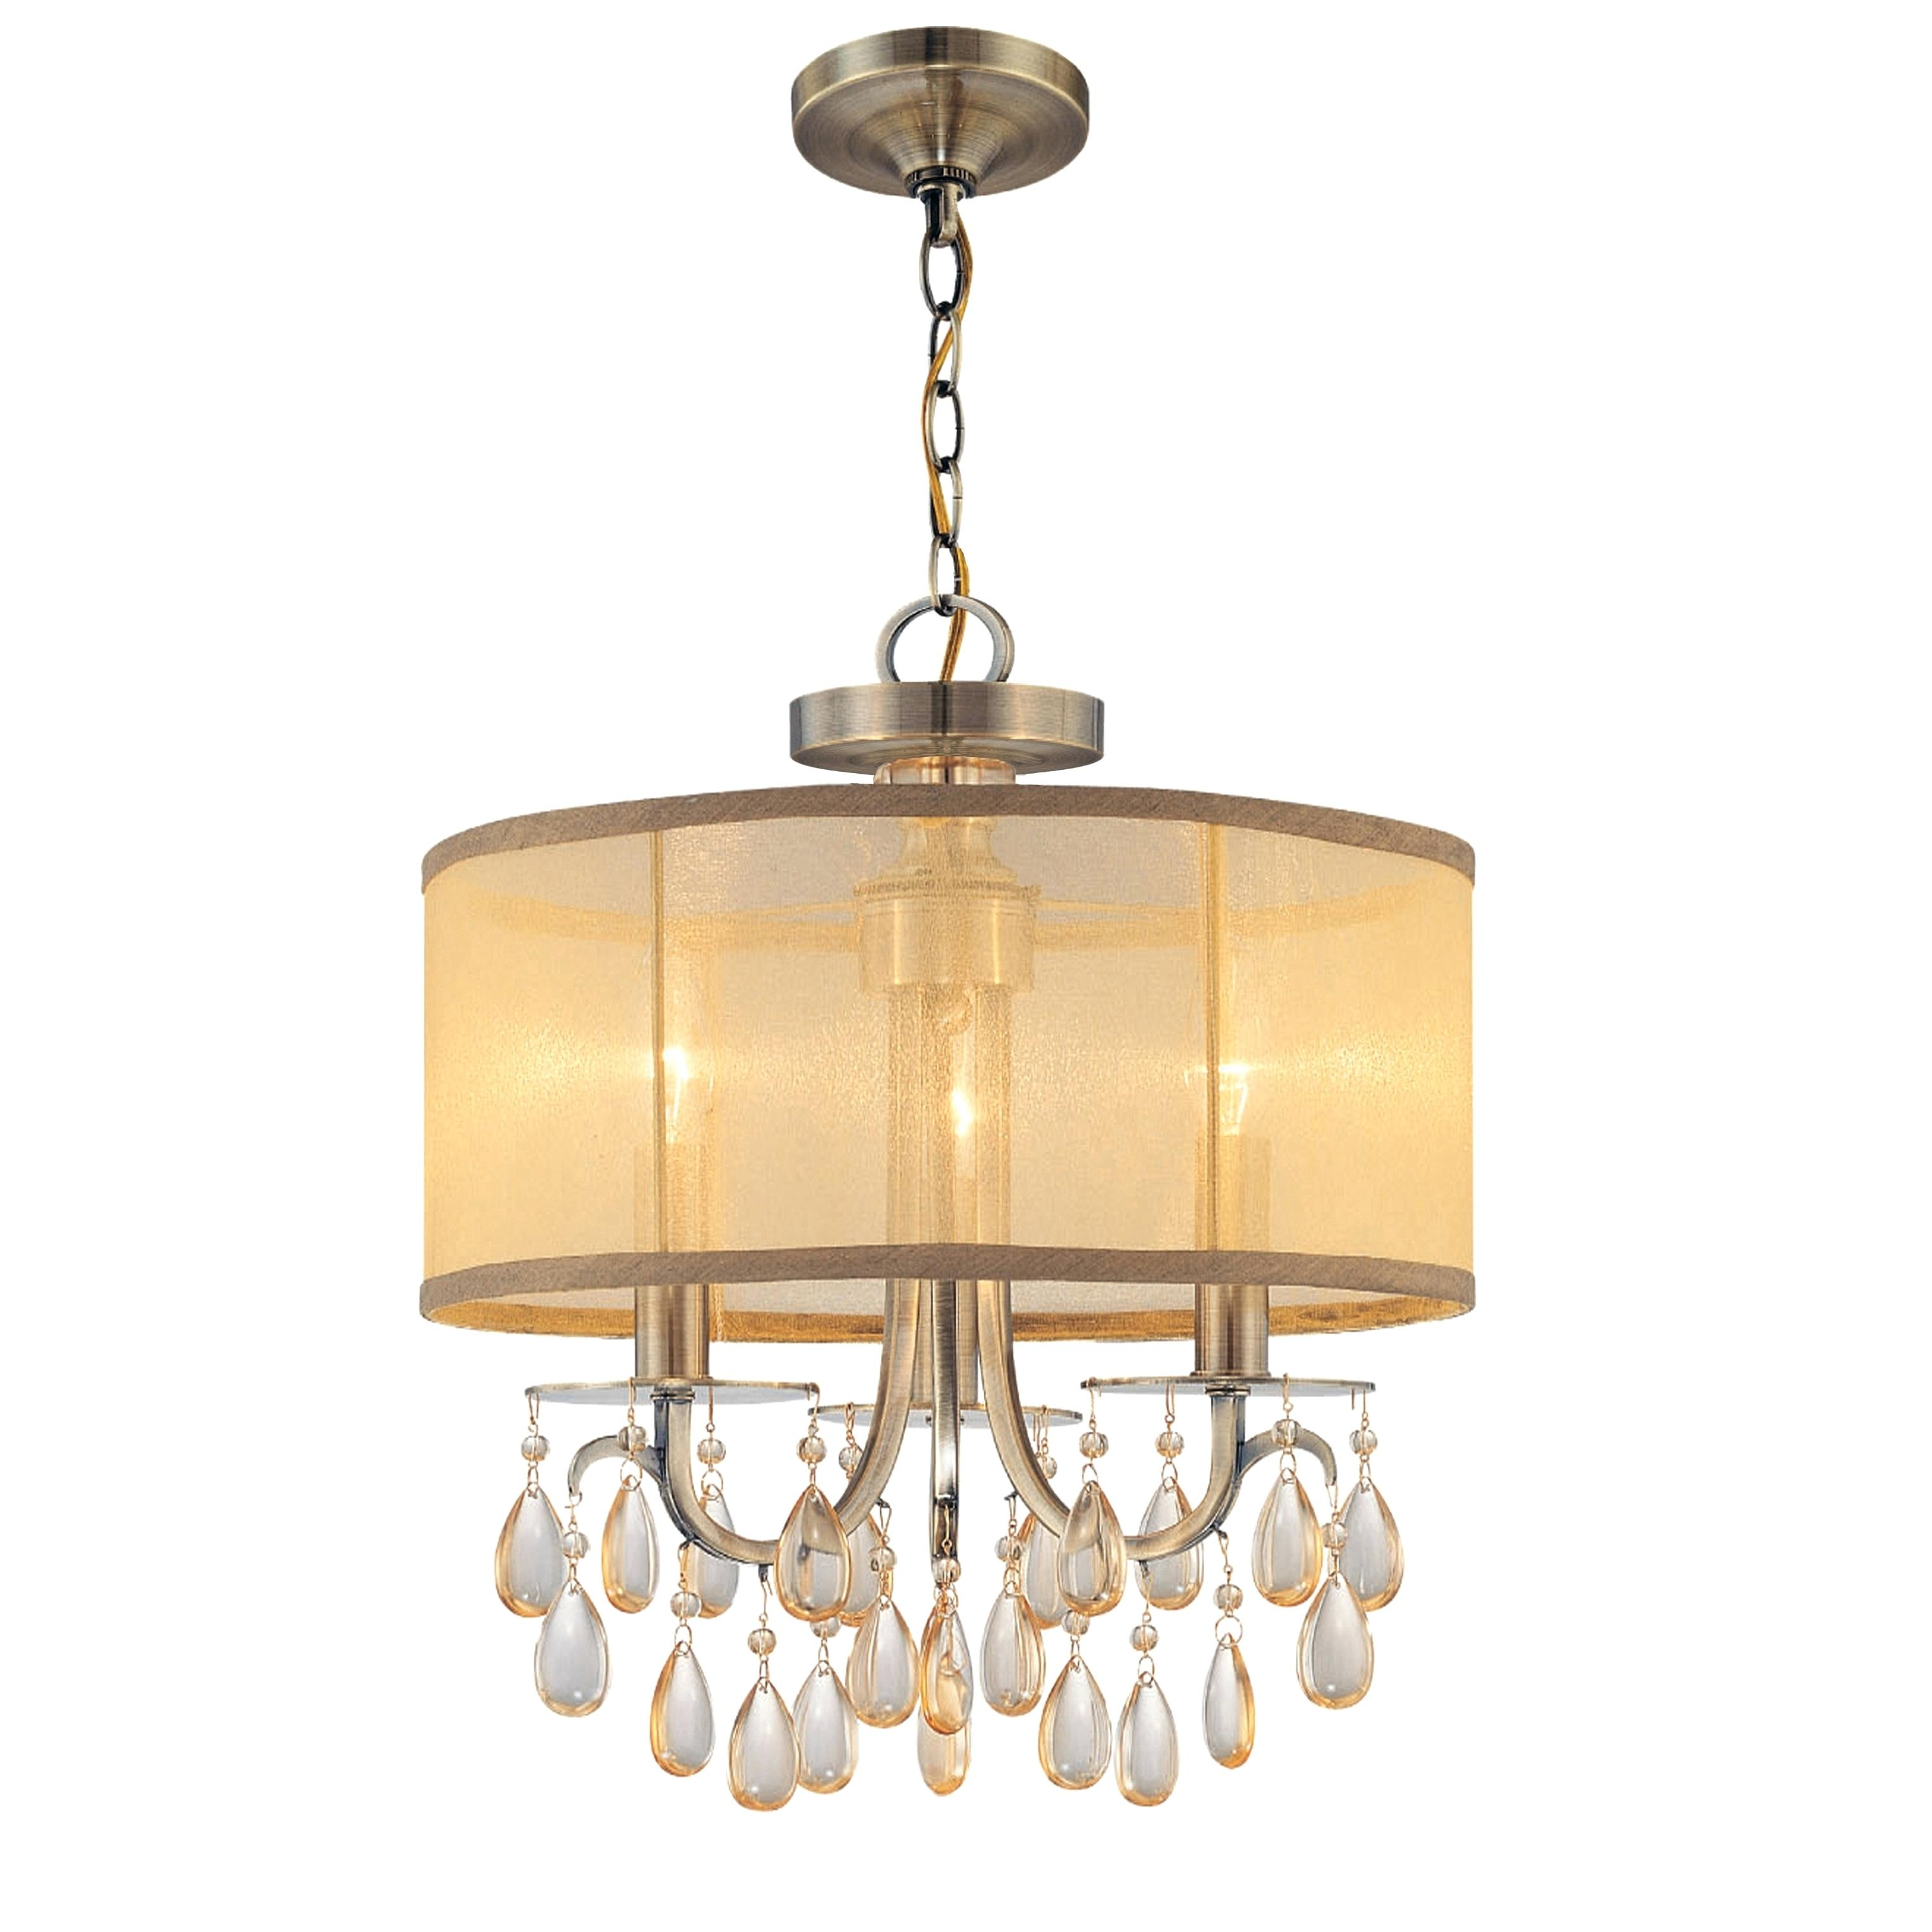 Hampton Bay Chandelier Engageri With Regard To Large Black Chandelier (View 10 of 15)